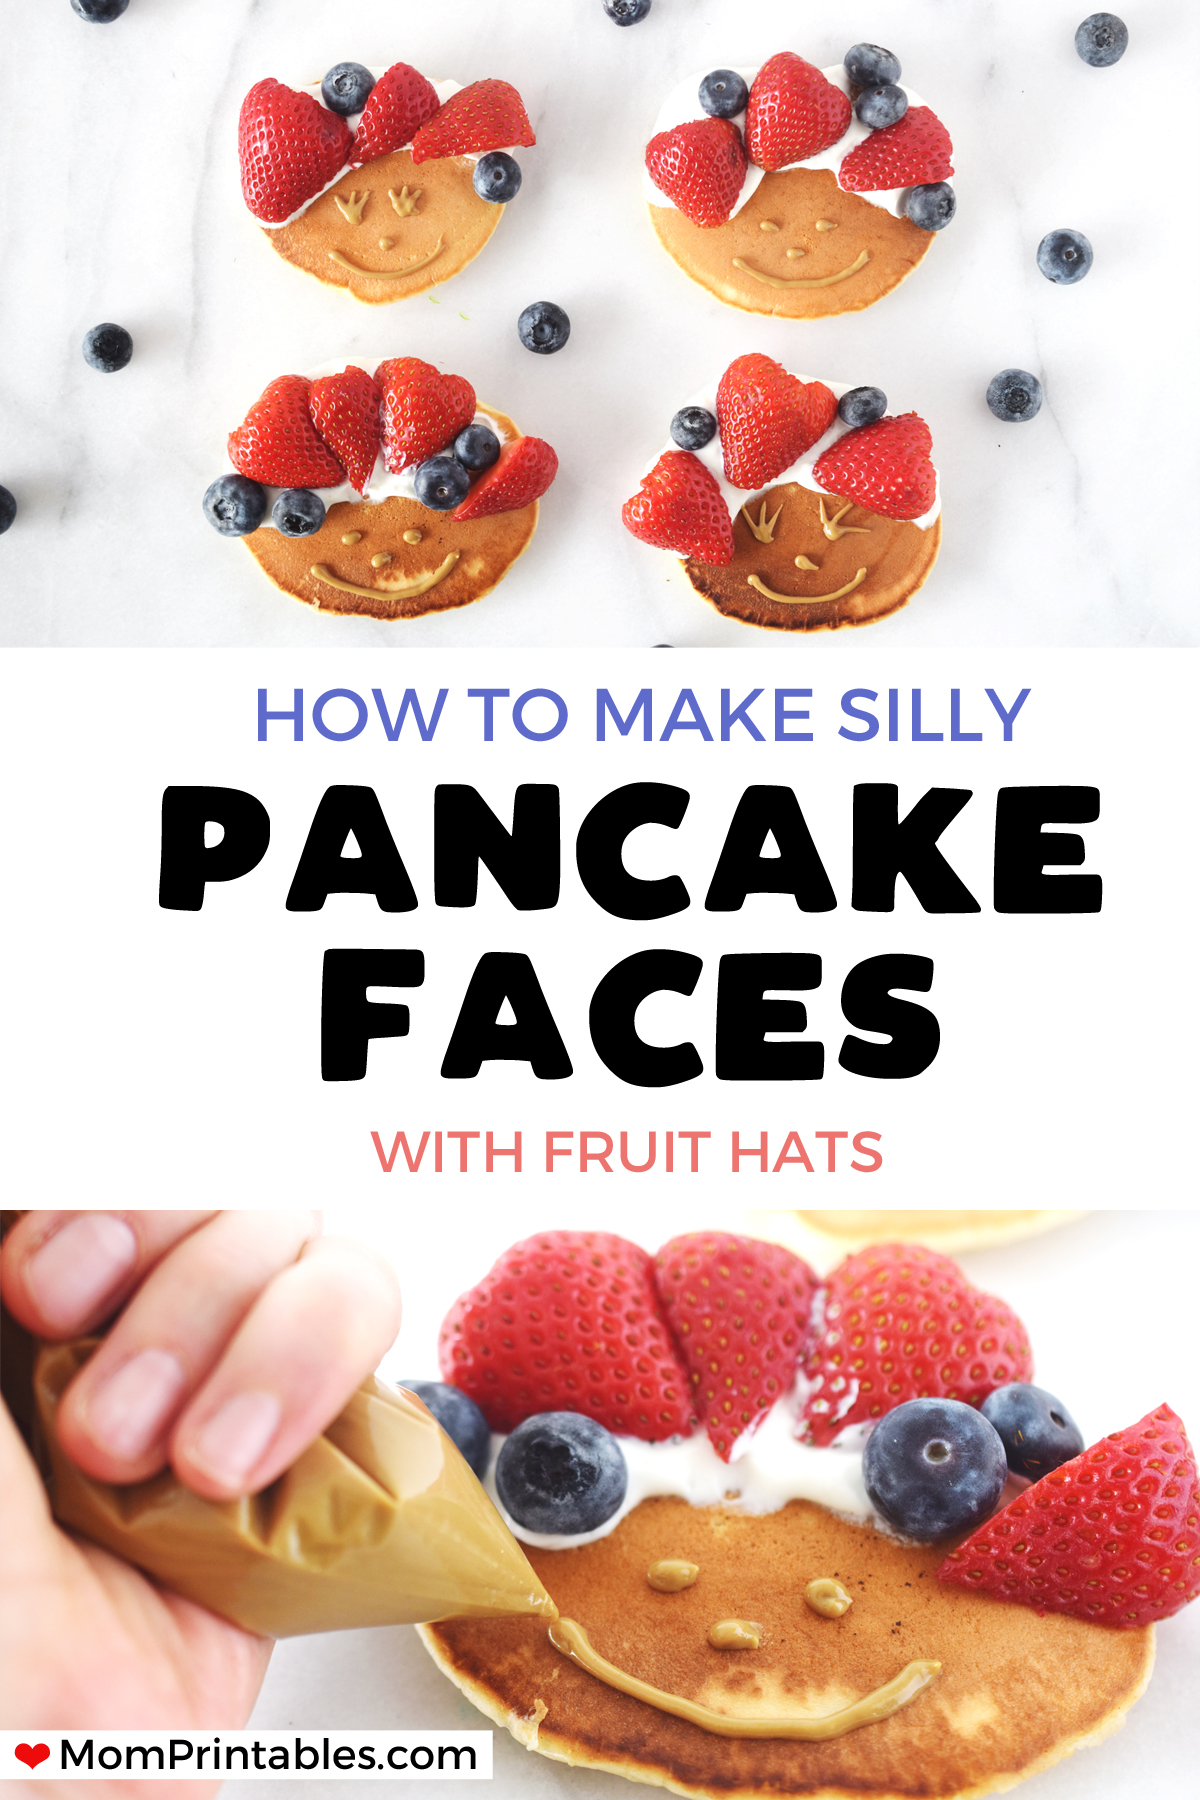 Pancake faces for kids | Toddler friendly recipes | kid friendly recipes | funny | silly | smile | fun | peanut butter | fruit | sunbather | simple | greek yogurt | healthy breakfasts | food recipes | meals | #kidrecipes #pancakes #pancakefaces #toddlerfriendlyrecipes